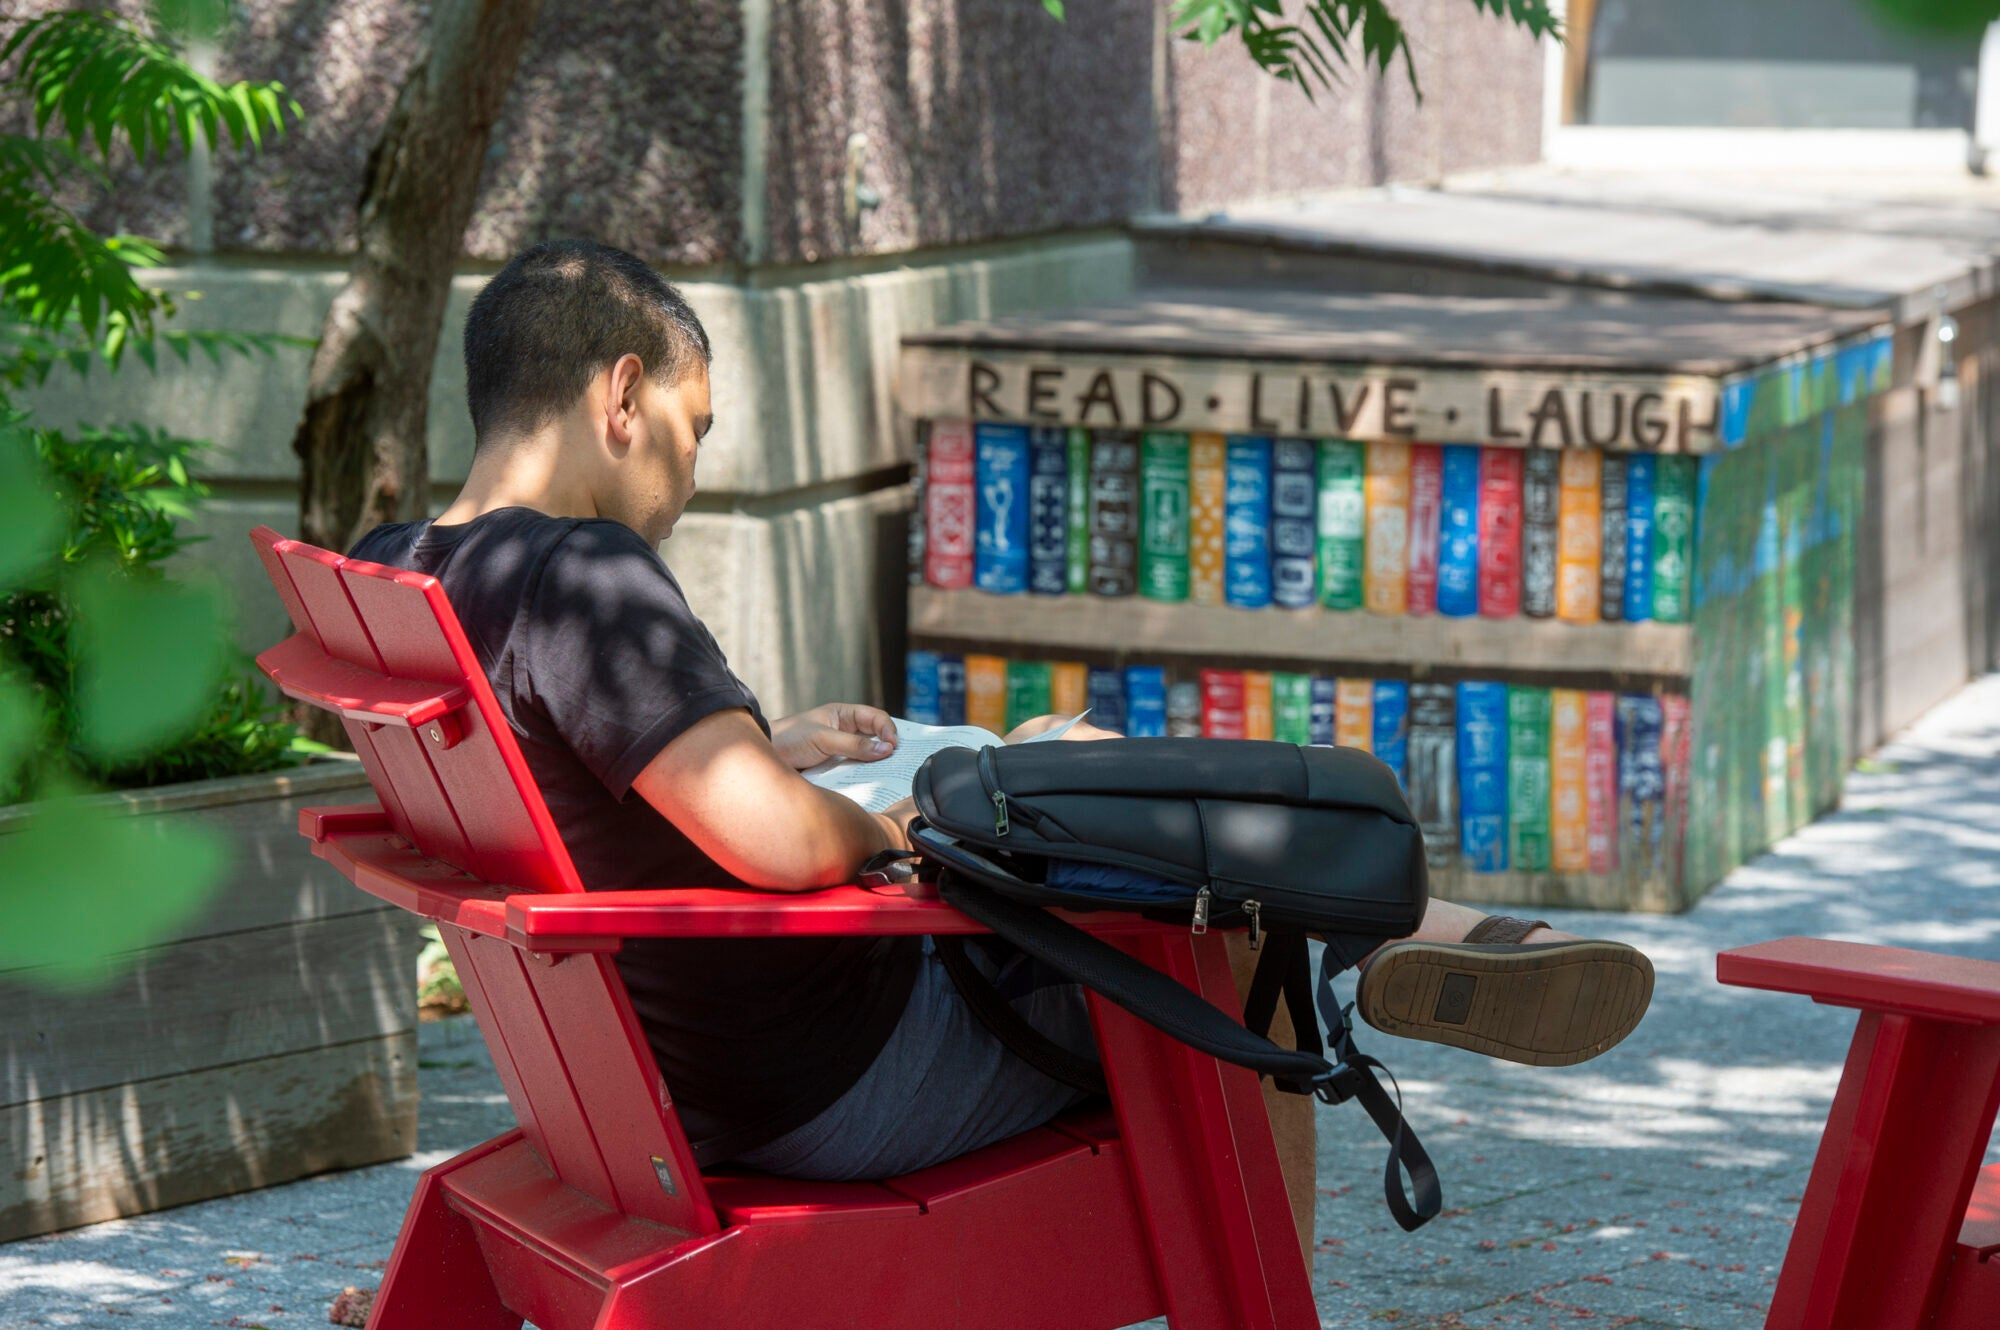 A student reads while sitting in a red Adirondack chair